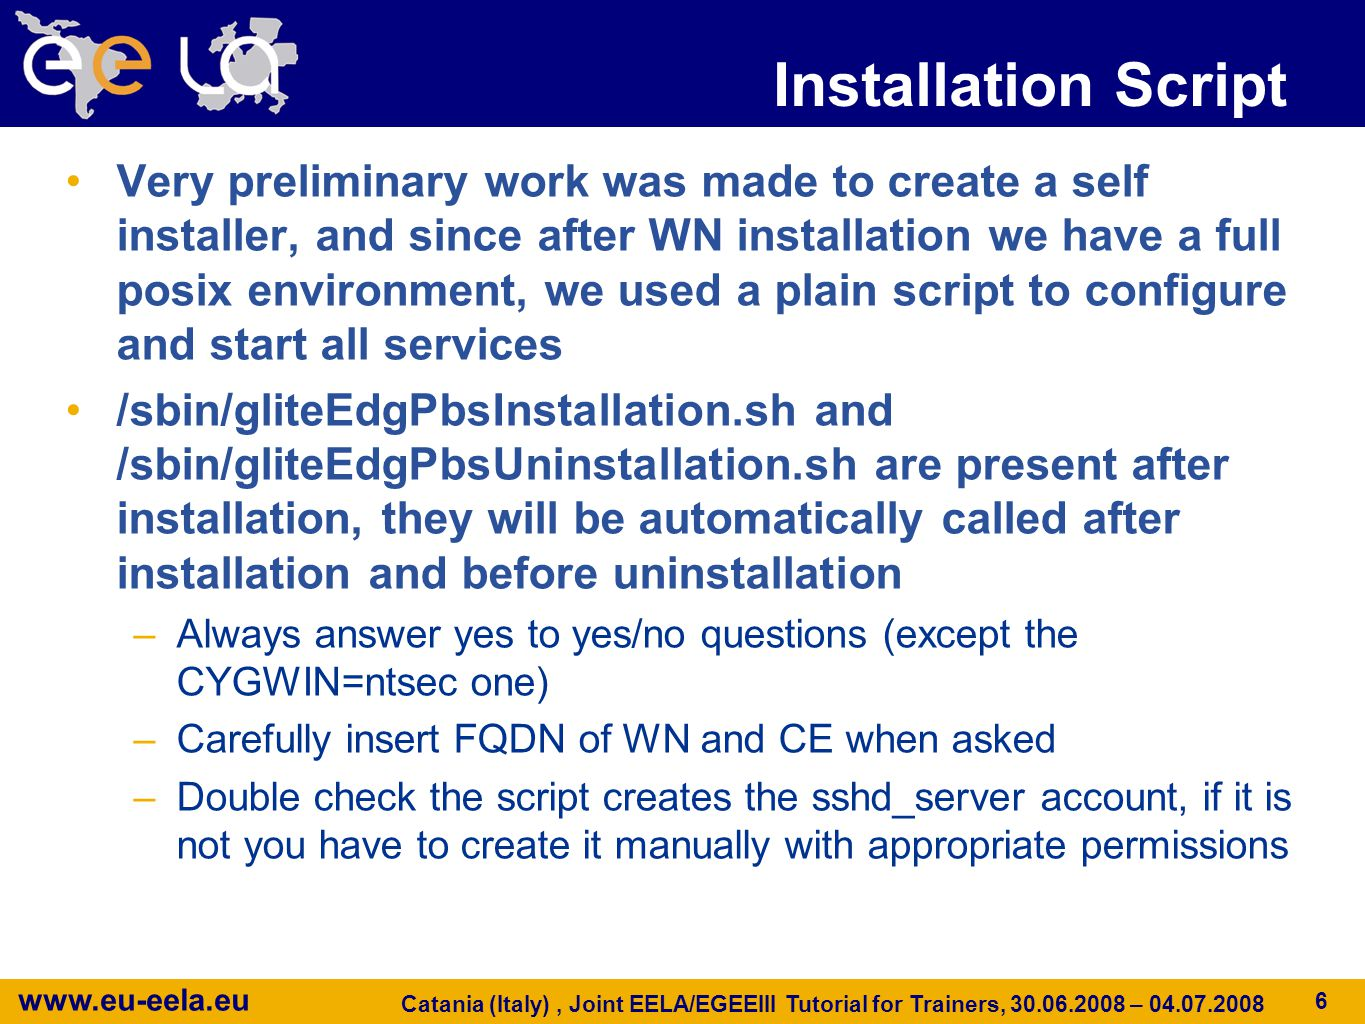 www.eu-eela.eu Catania (Italy), Joint EELA/EGEEIII Tutorial for Trainers, 30.06.2008 – 04.07.2008 7 Installation script continued Setting cygwin environment part2 (part1 is automated by the installer, windows registry keys): mapping /etc/passwd and /etc/group from windows users.